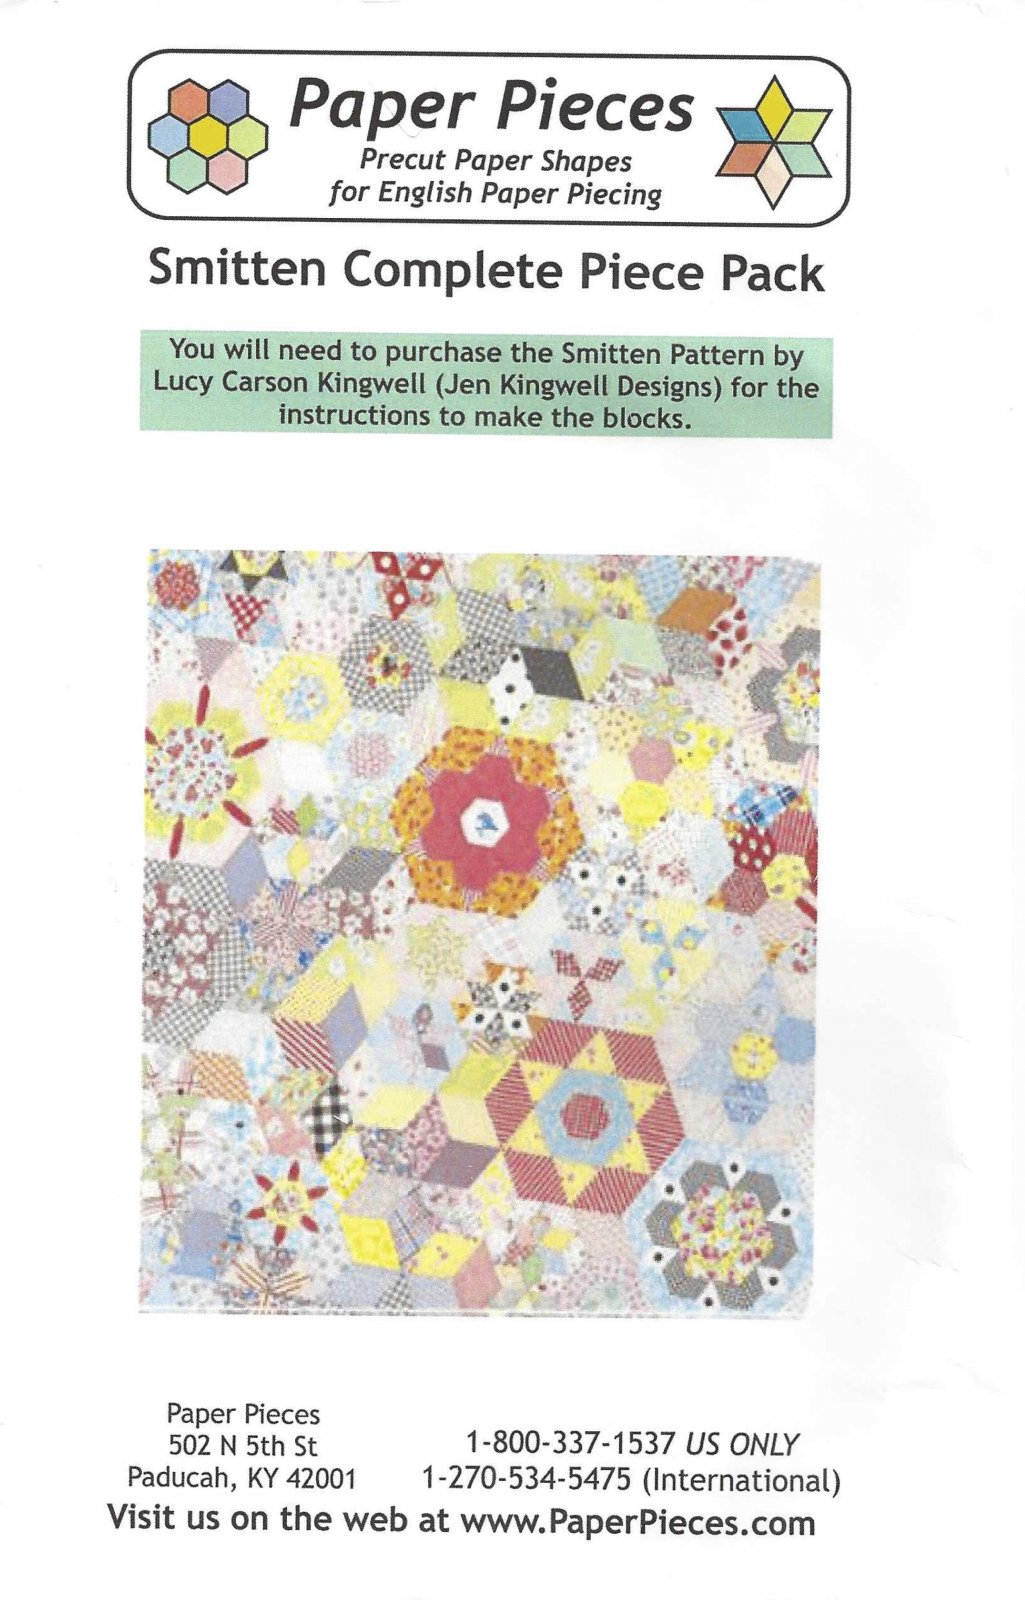 Smitten By Lucy Carson Kingwell - Paper Pieces - Complete Piece Pack - Includes Pattern